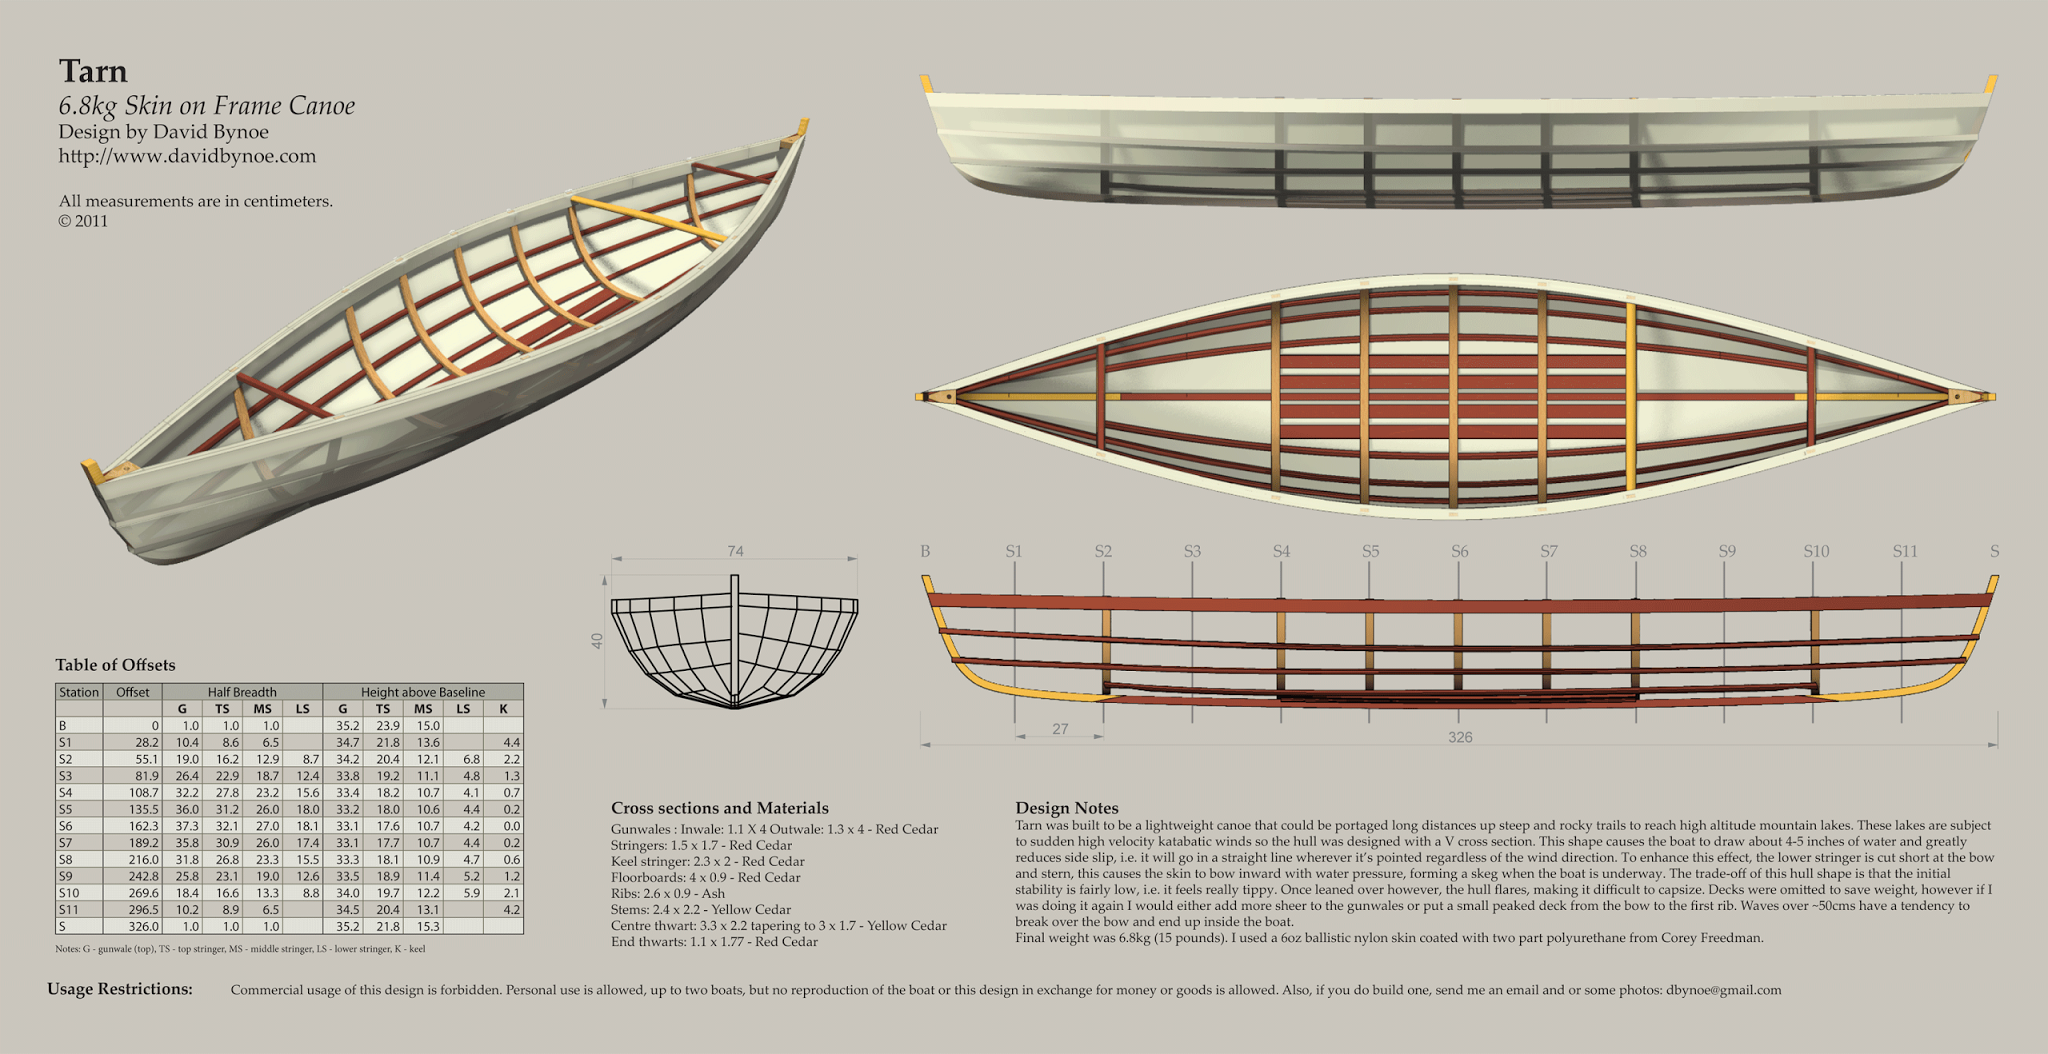 Free skin on frame canoe plans | All Things Wood in 2018 | Pinterest ...